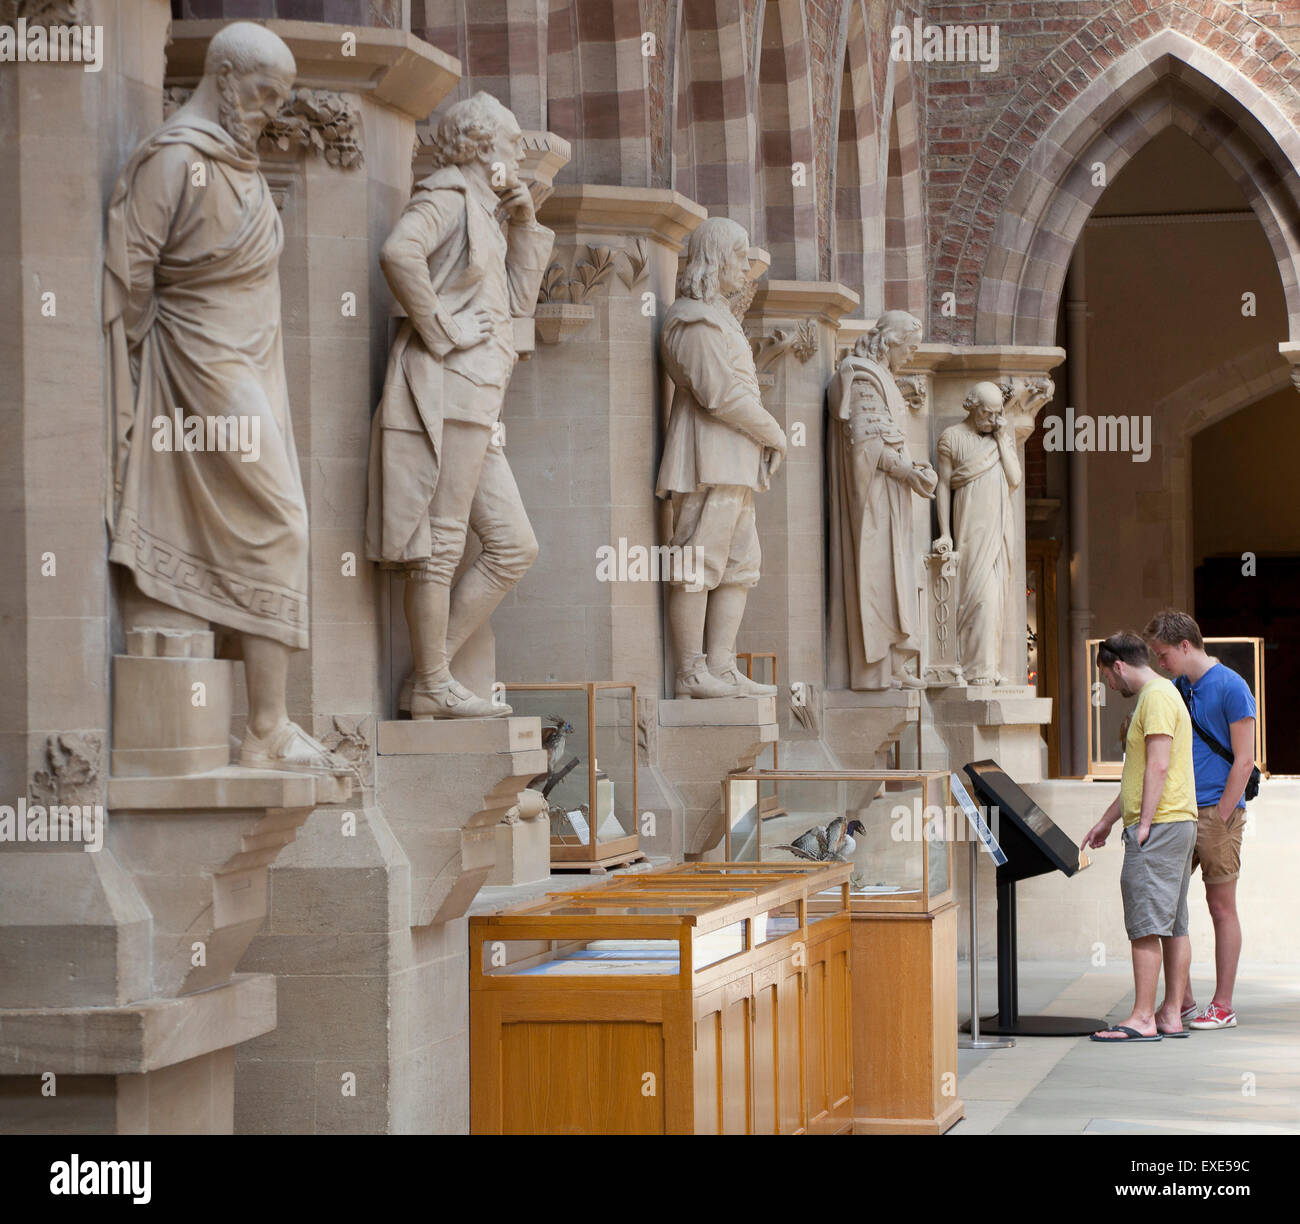 Statues of learned men on display at the Oxford museum of Natural History, Oxford. Visitors using a digital museum - Stock Image